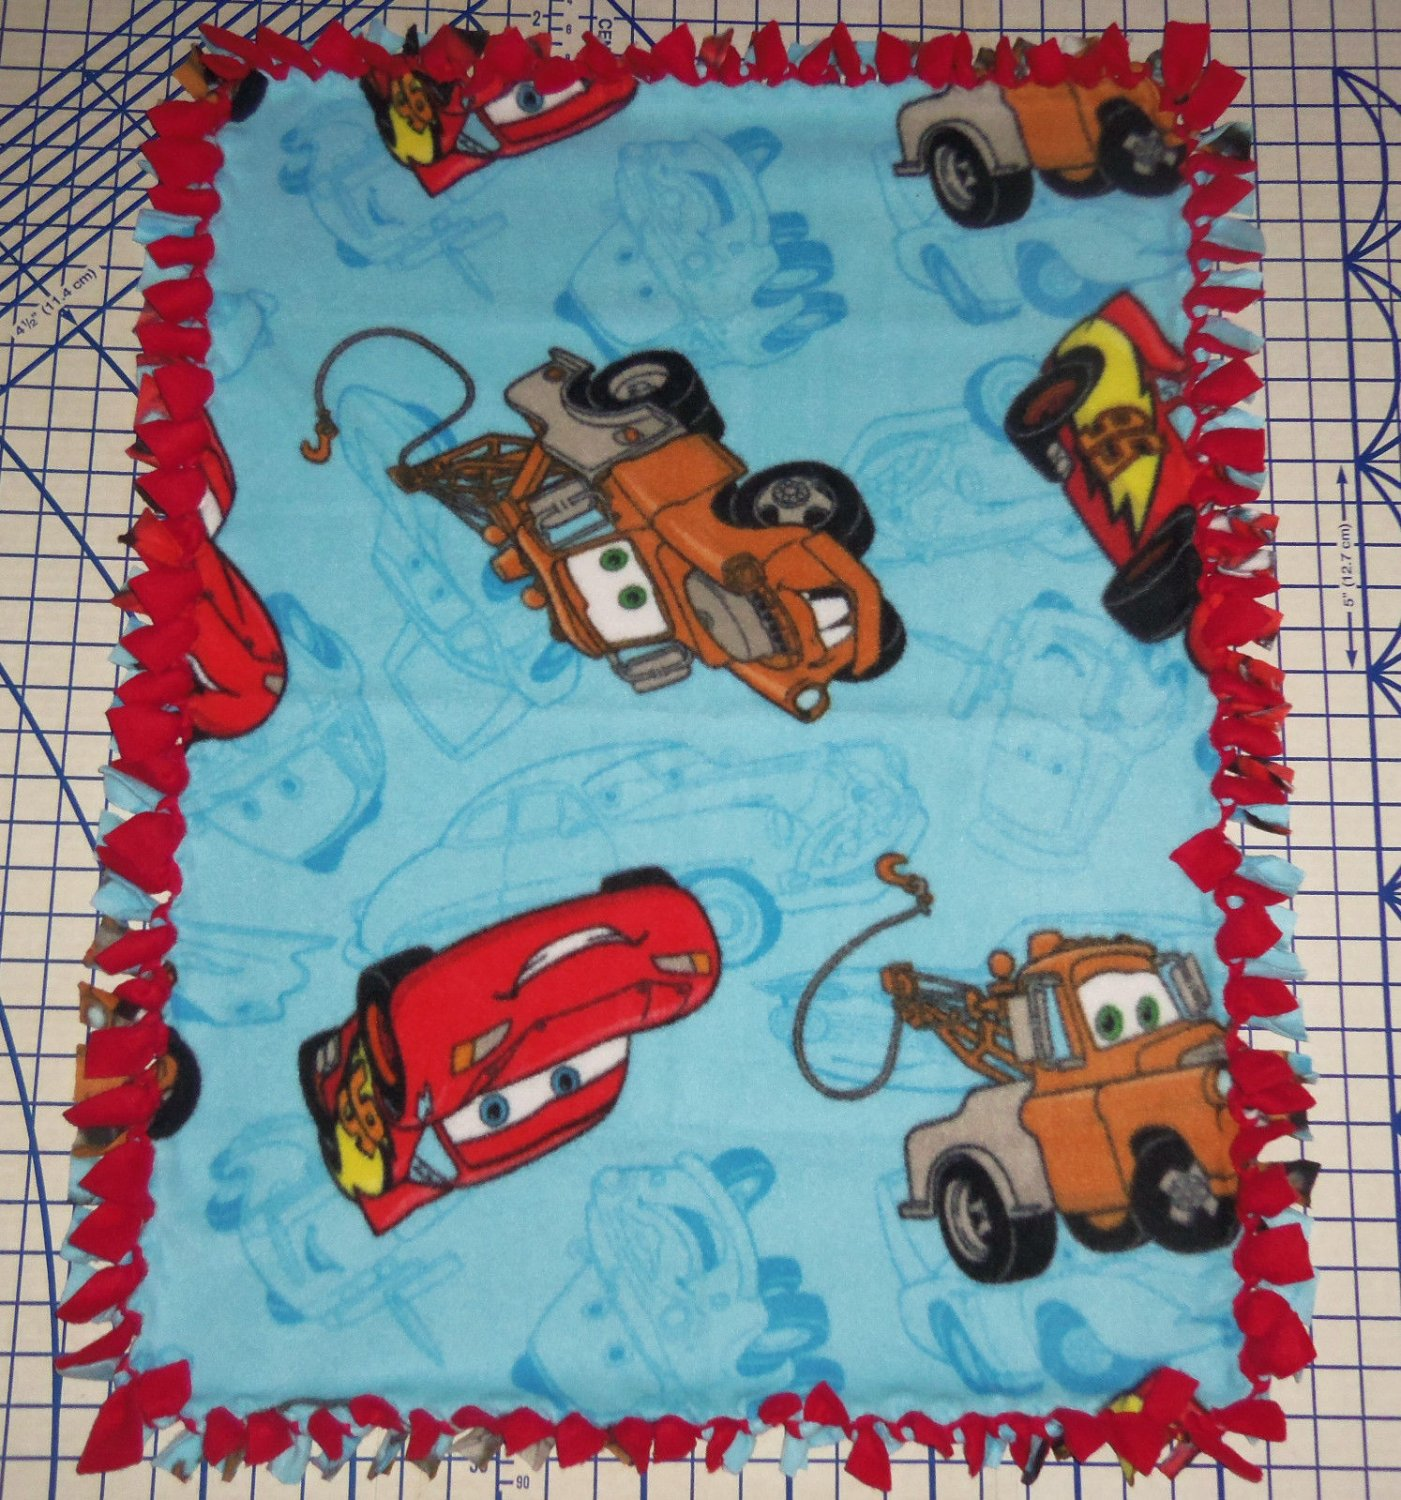 "Disney Fleece Baby Blanket  Cars Blue Pet Lap 30"" x 24""  New"